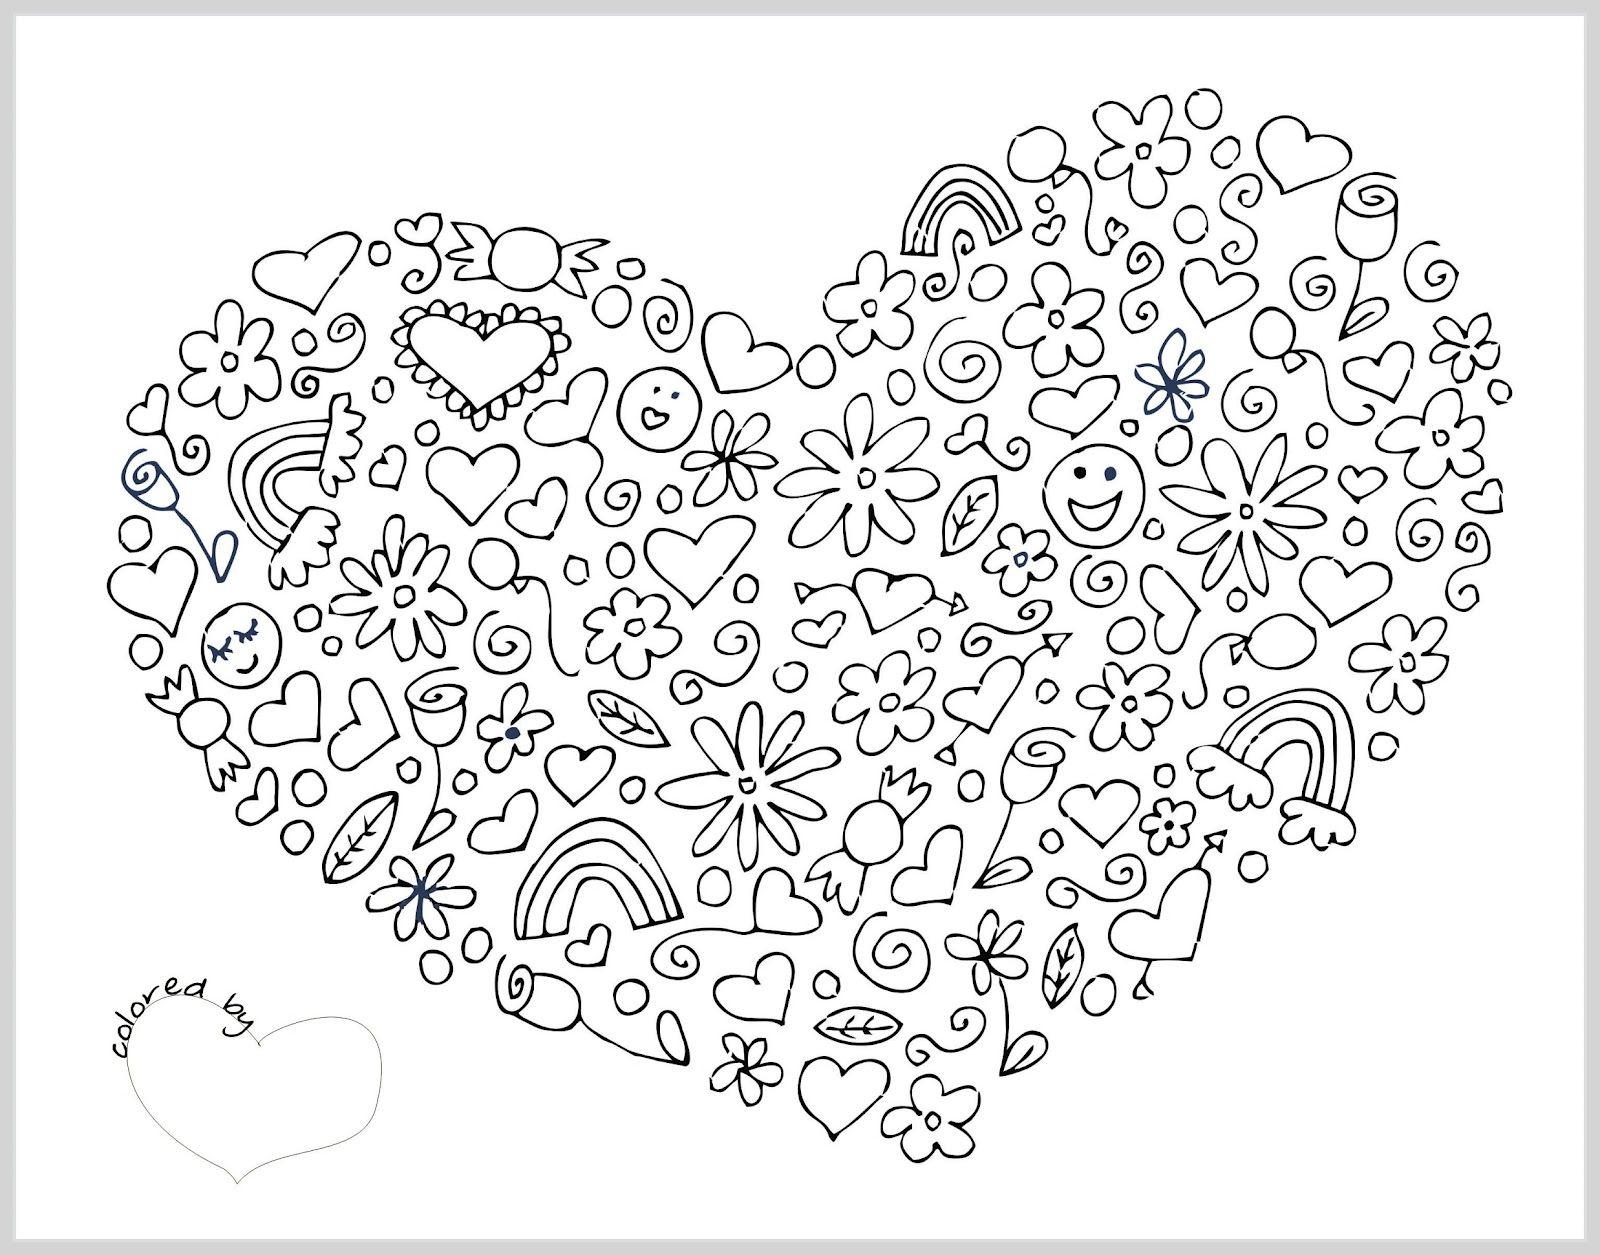 Coloring pages for adults valentines day - Free Coloring Pages For Adults Printable Hard To Color Coloring